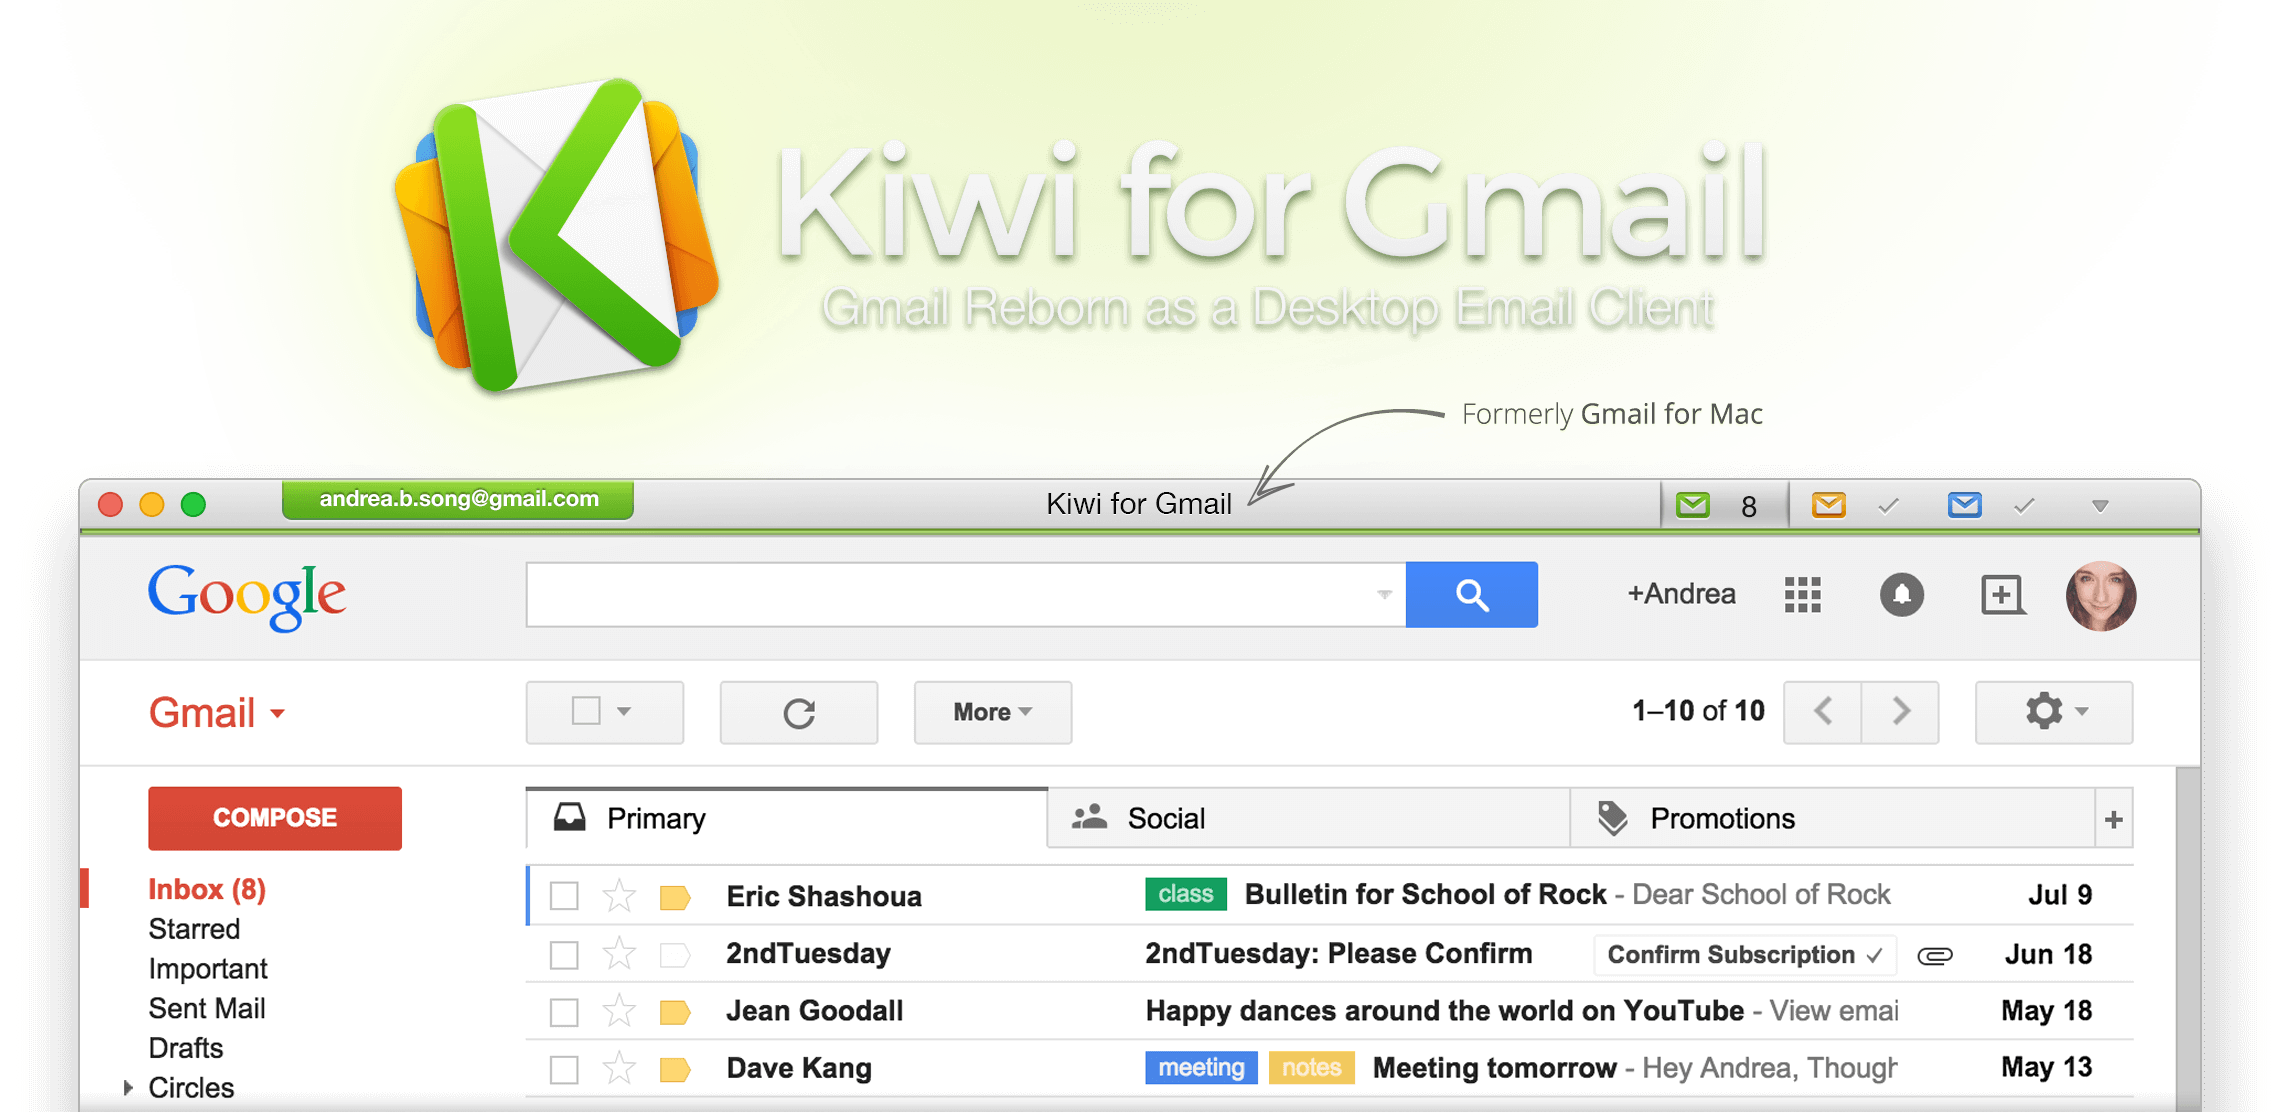 Kiwi for Gmail Email client